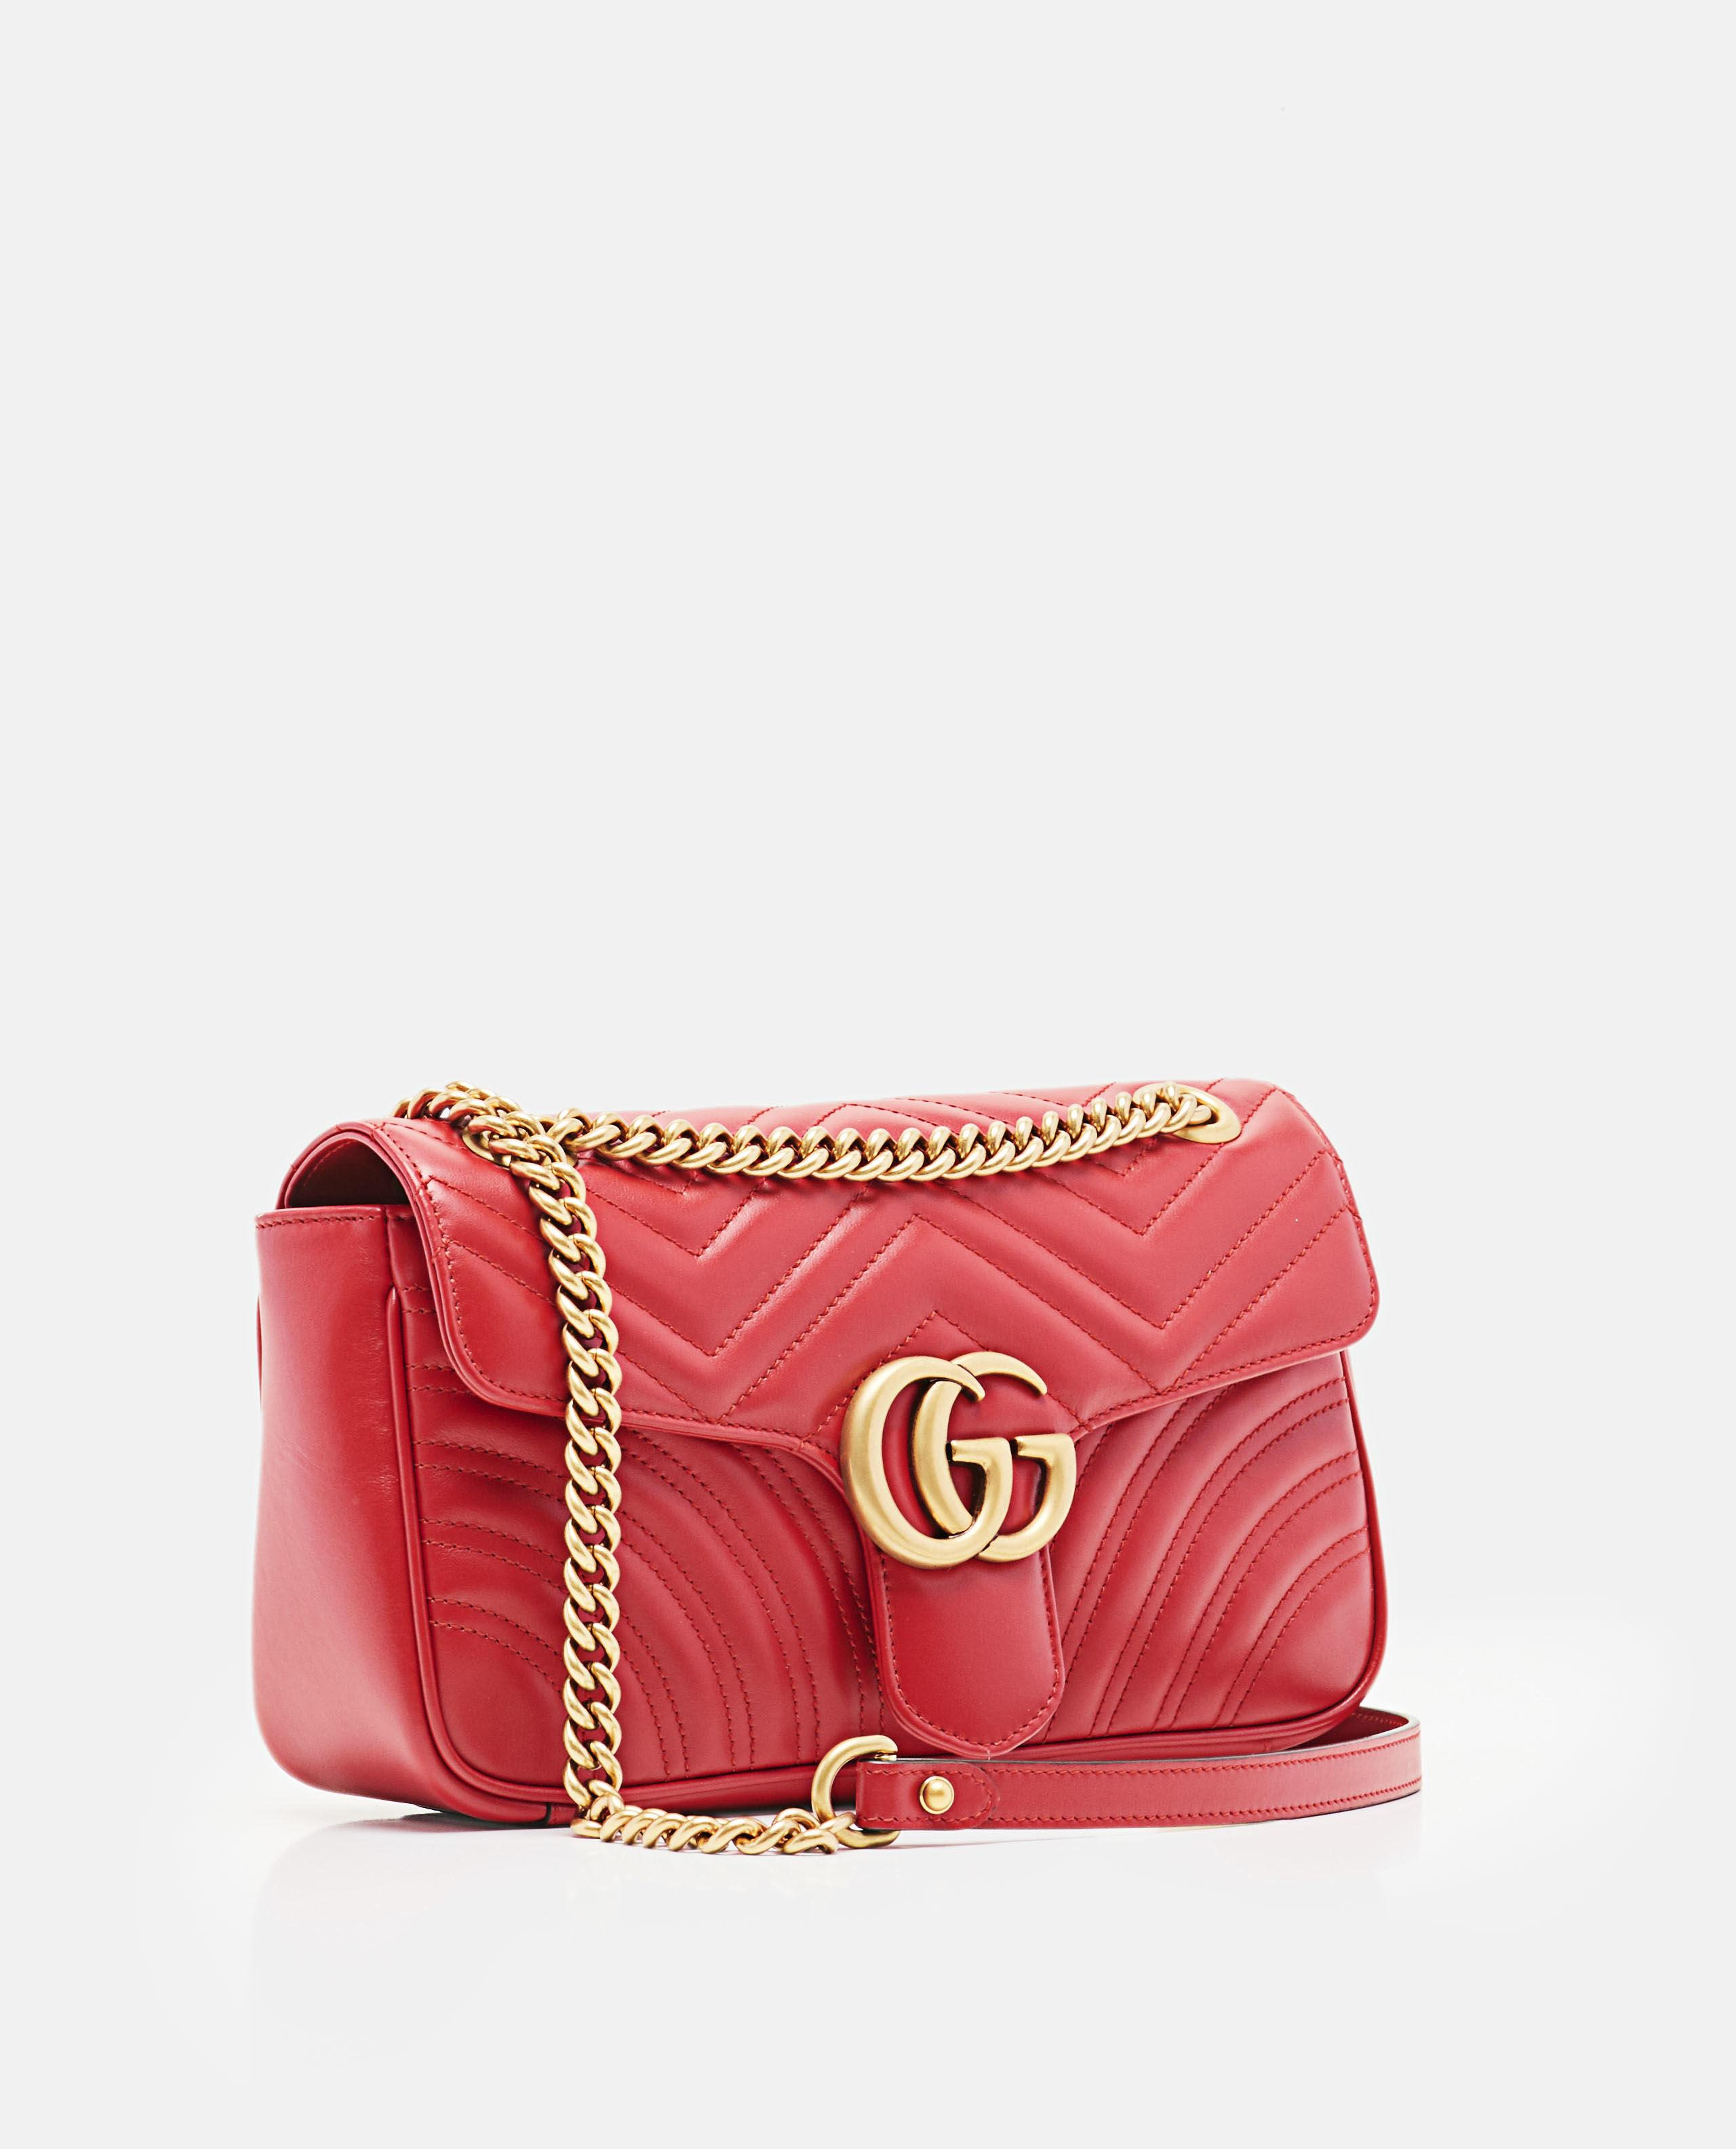 c983af810 Gucci Gg Marmont Small Matelassé Shoulder Bag in Red - Lyst